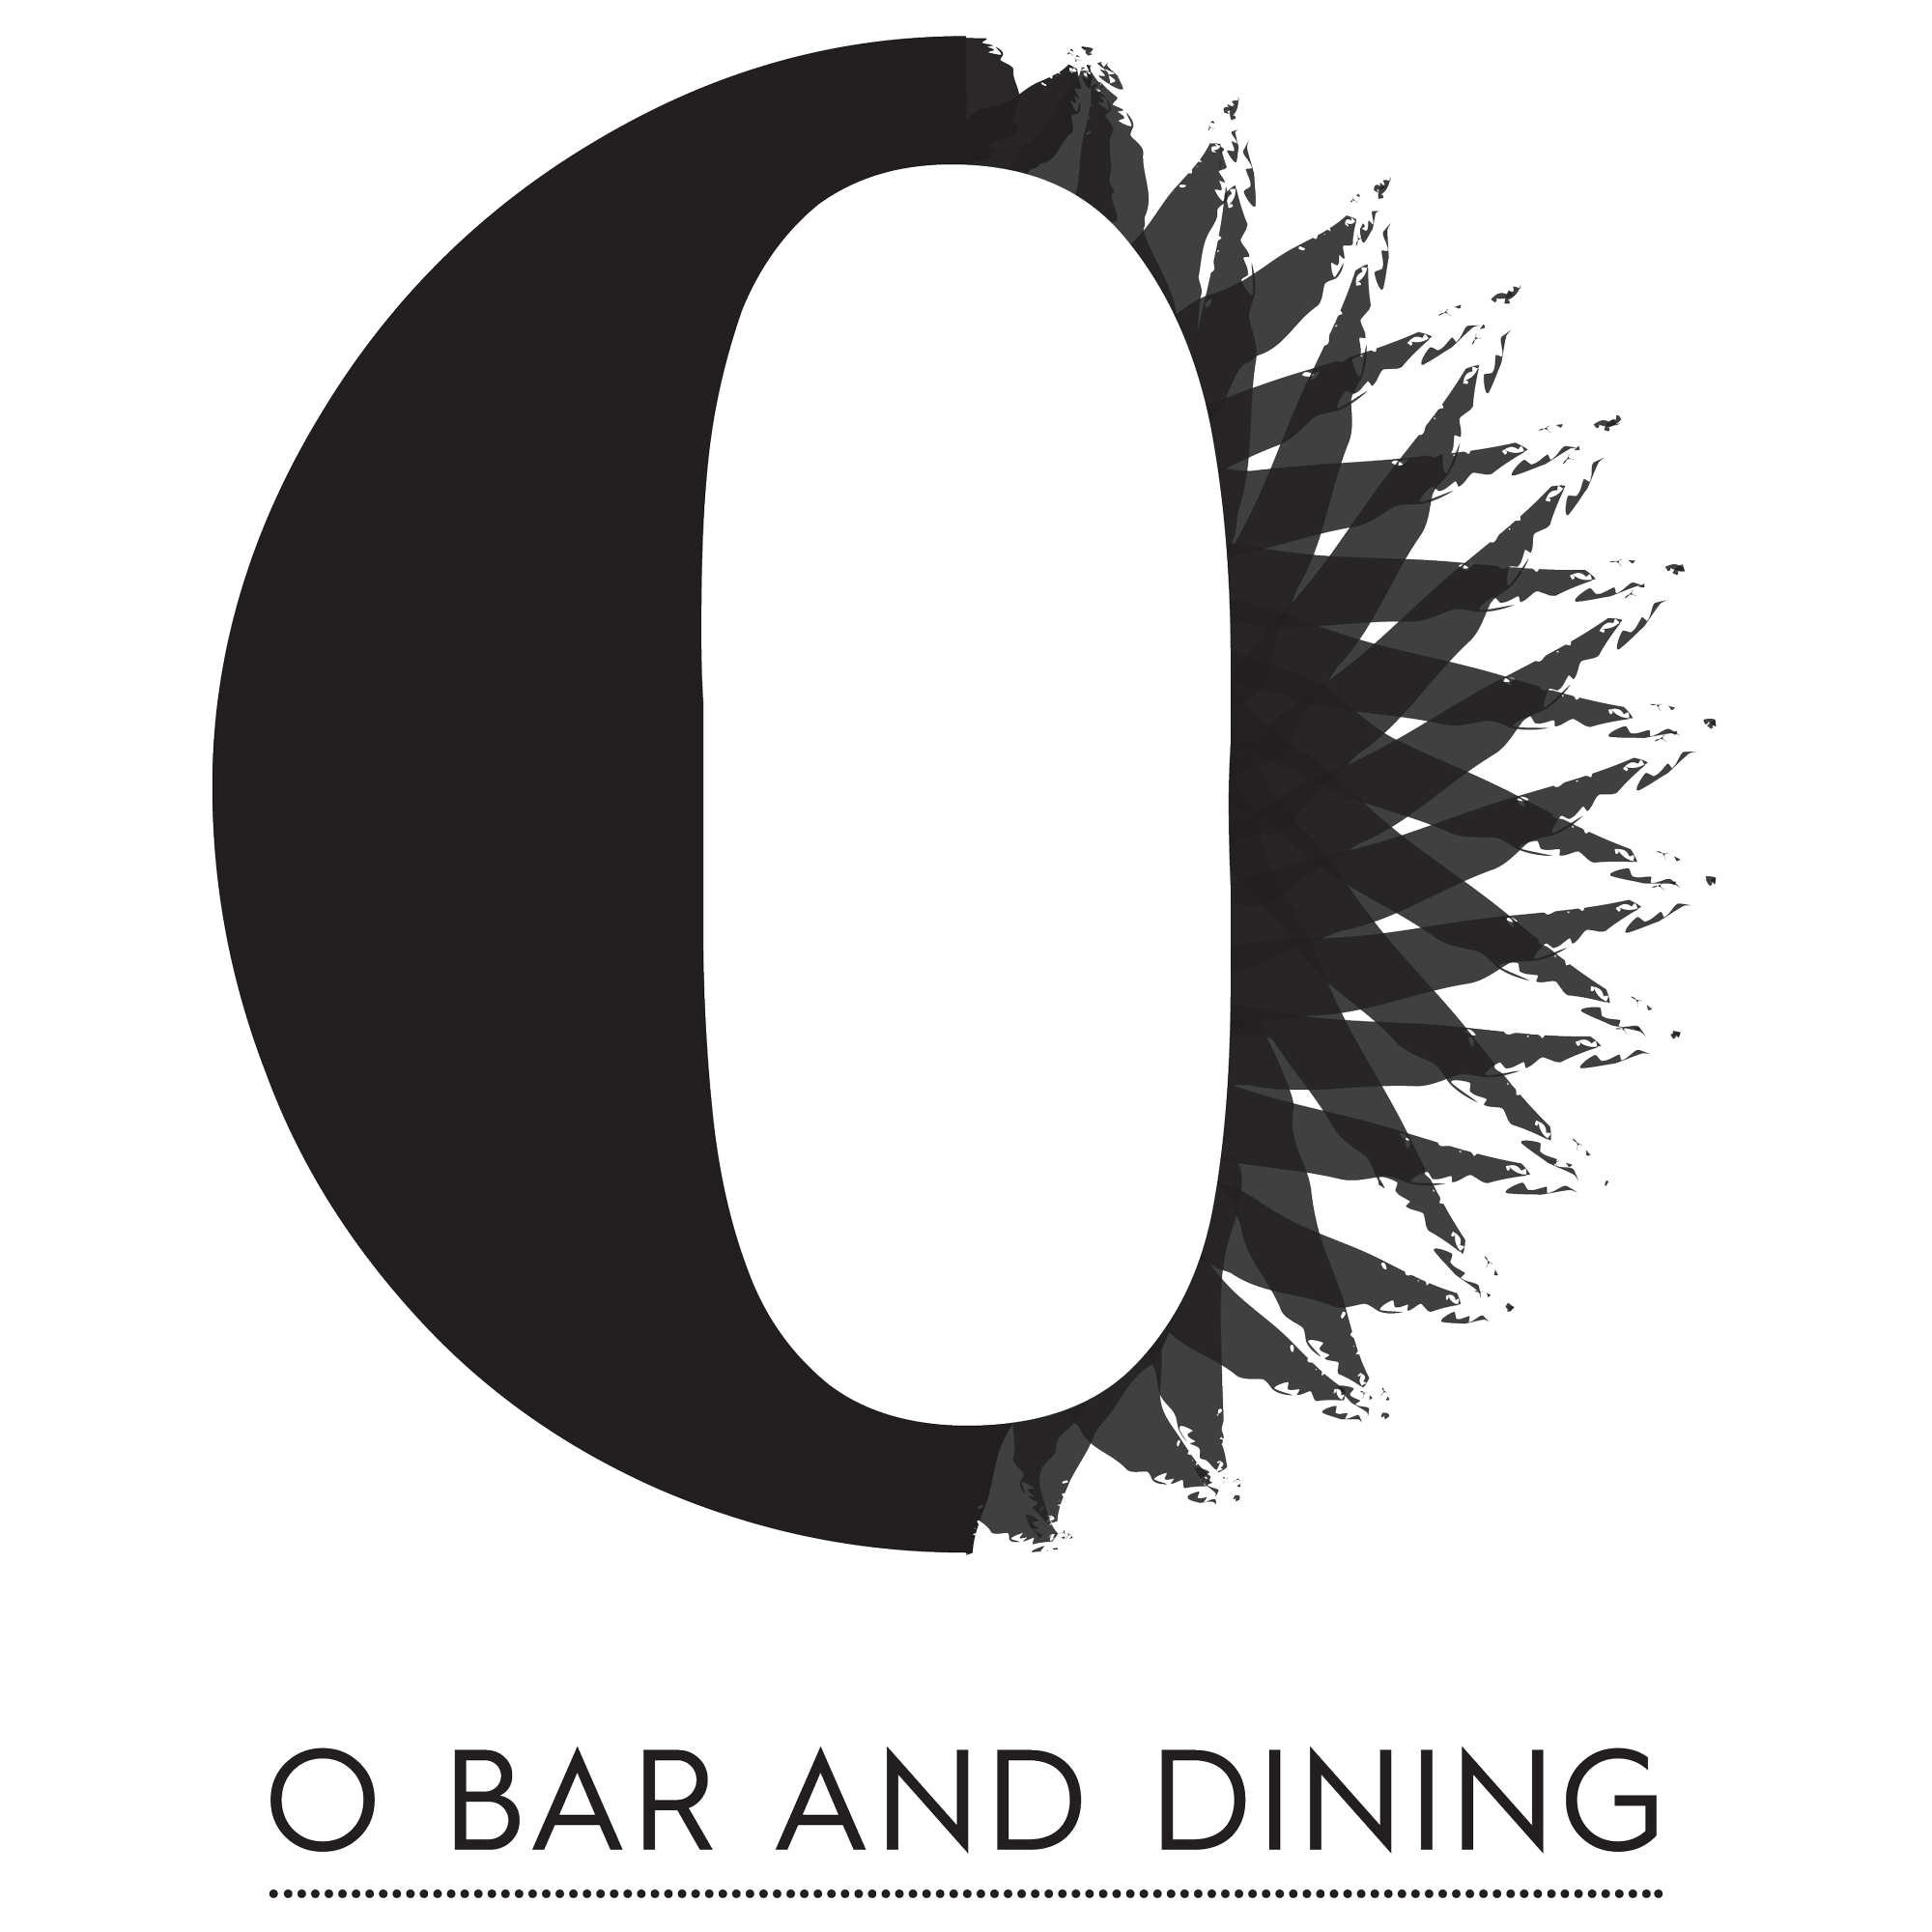 O Bar and Dining